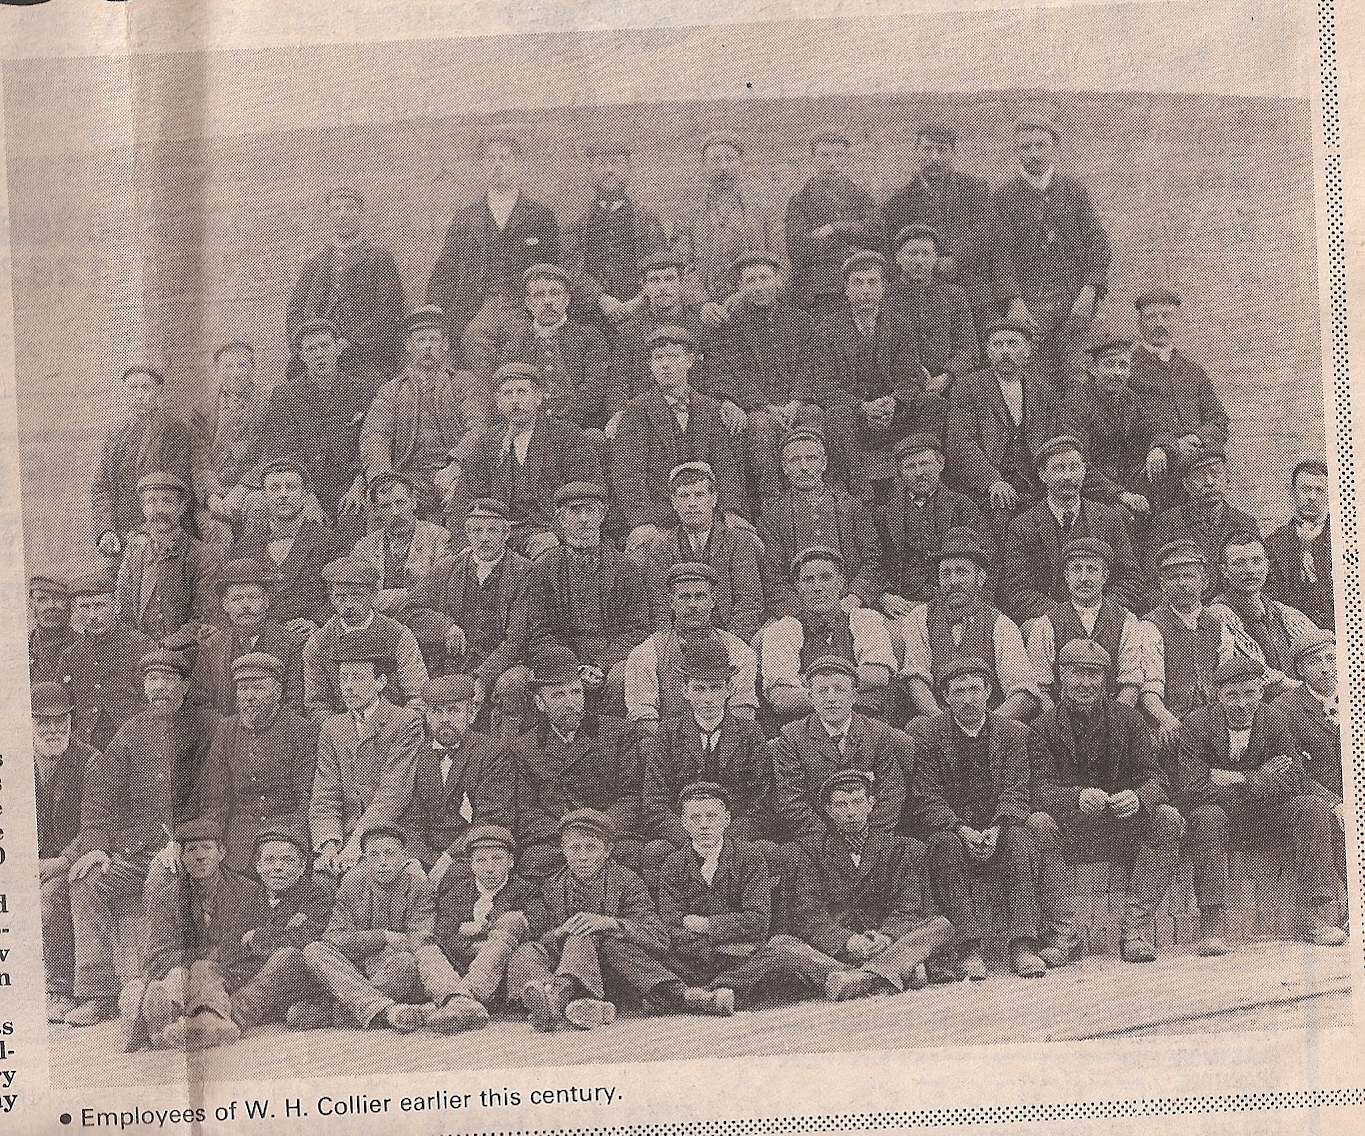 Workers at W H Collier, early 20th Century